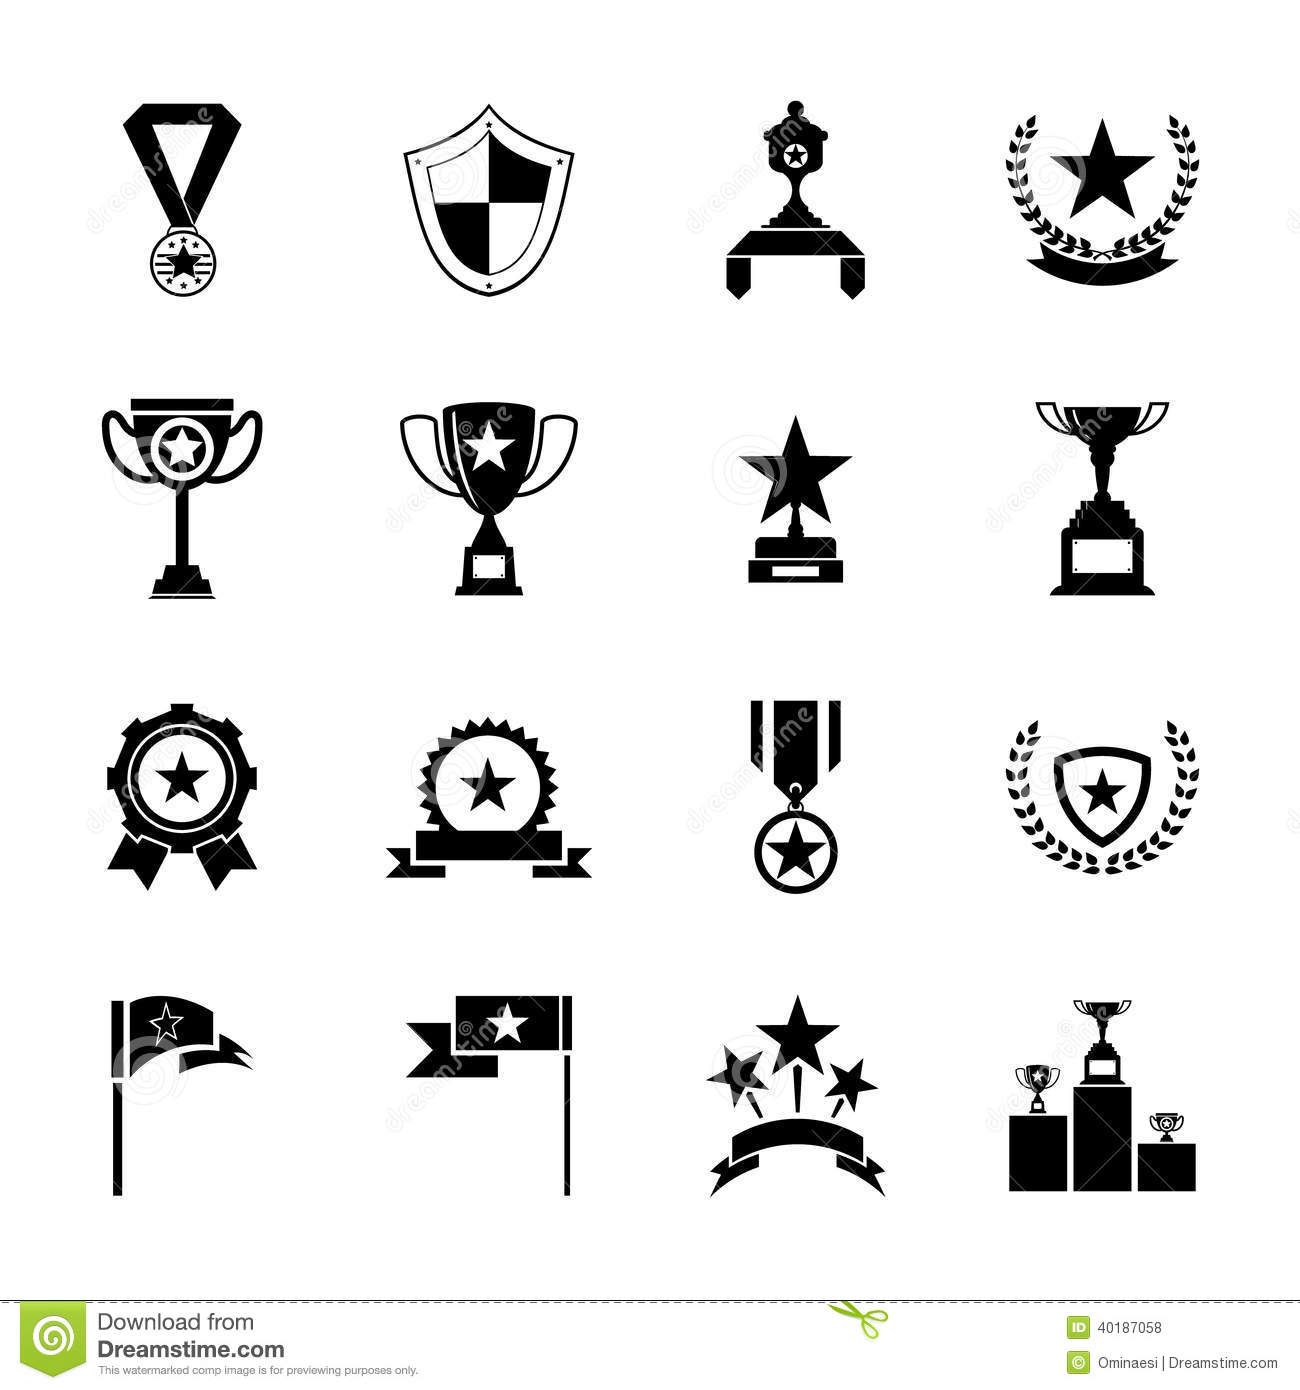 Silhouette Award Trophy Images